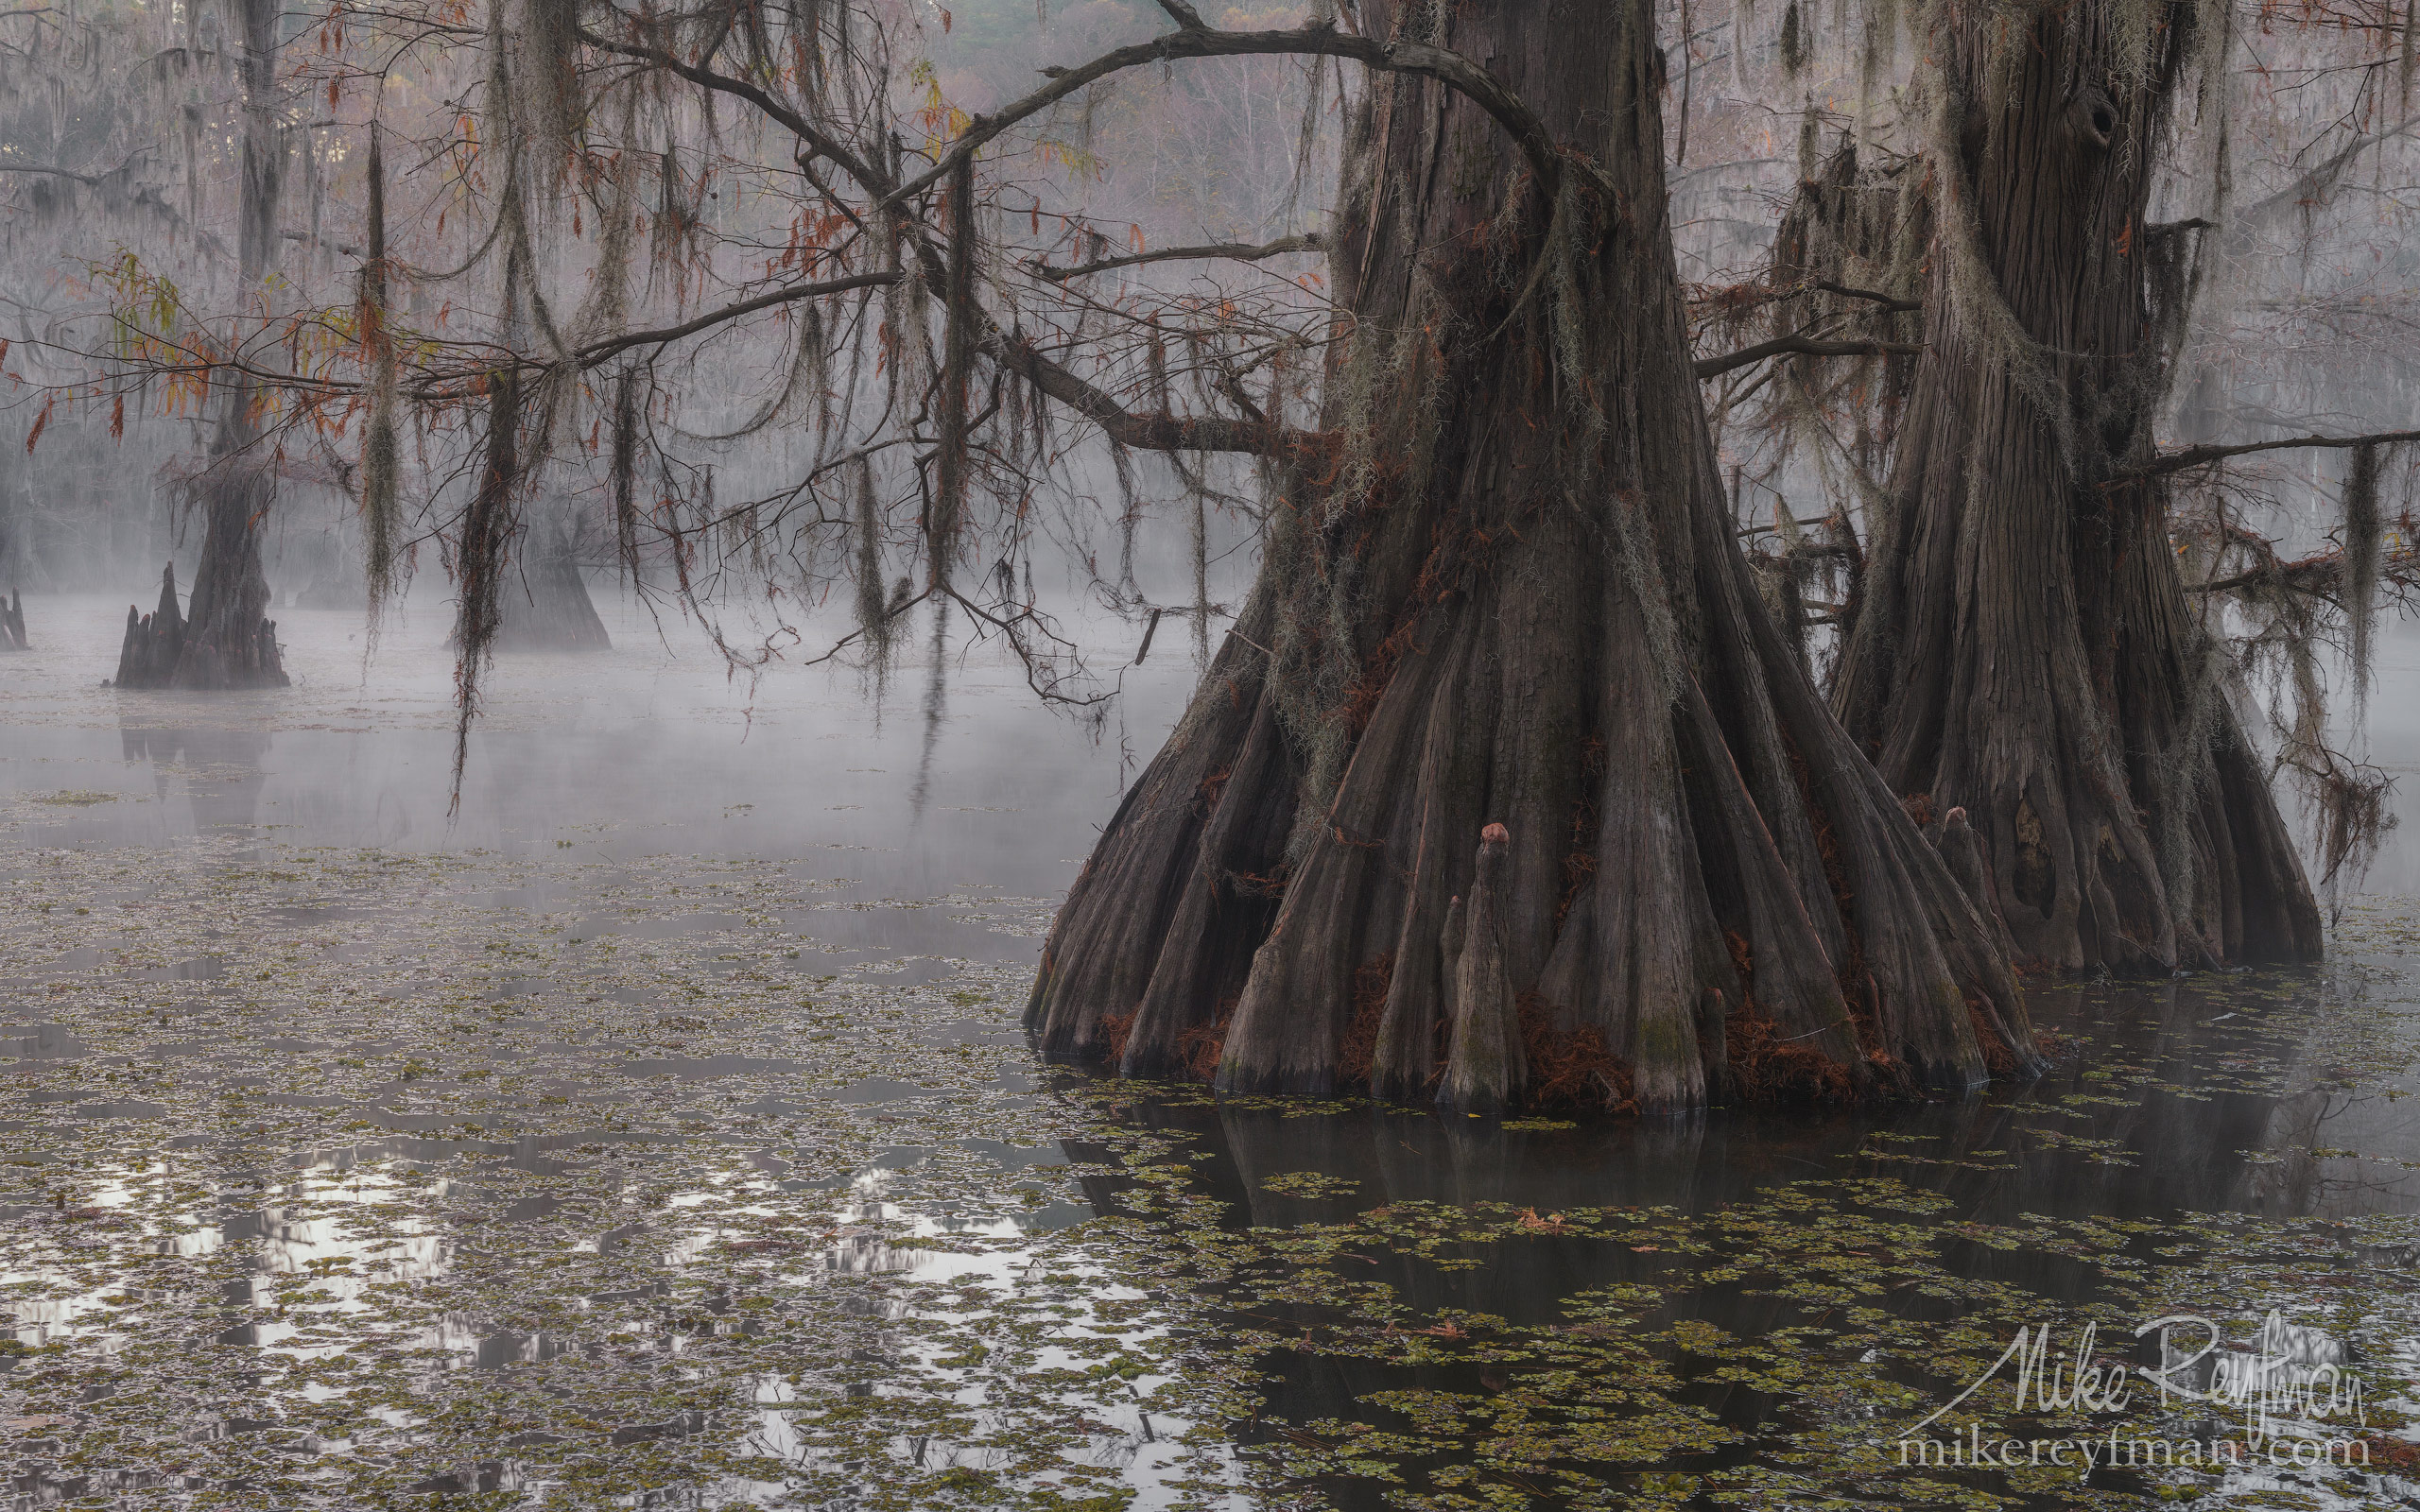 Bald Cypress trees in the swamp. Foggy morning on Caddo Lake, Texas, US 010-LT1-50A3263.jpg - Bold Cypress and Tupelo Trees in the swamps of Atchafalaya River Basin. Caddo, Martin and Fousse Lakes. Texas/Louisiana, USA. - Mike Reyfman Photography